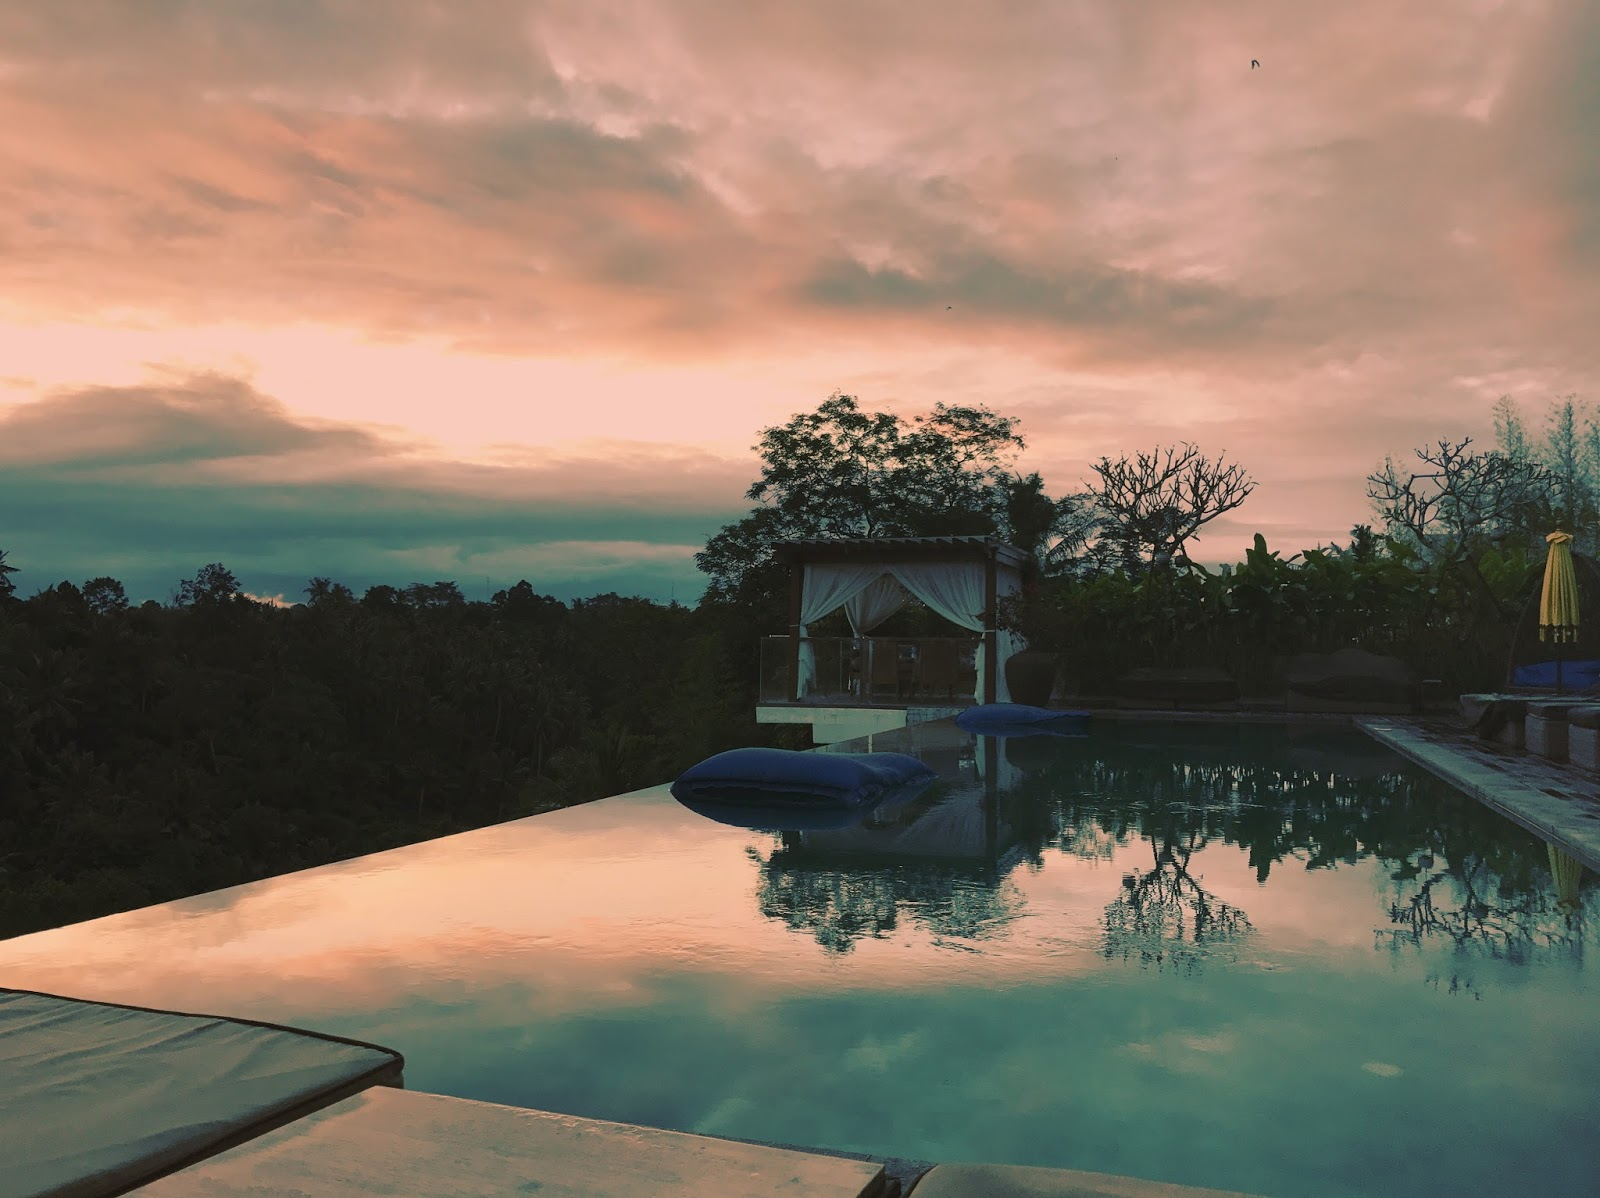 Goya Boutique Hotel, Ubud Sunset in Bali